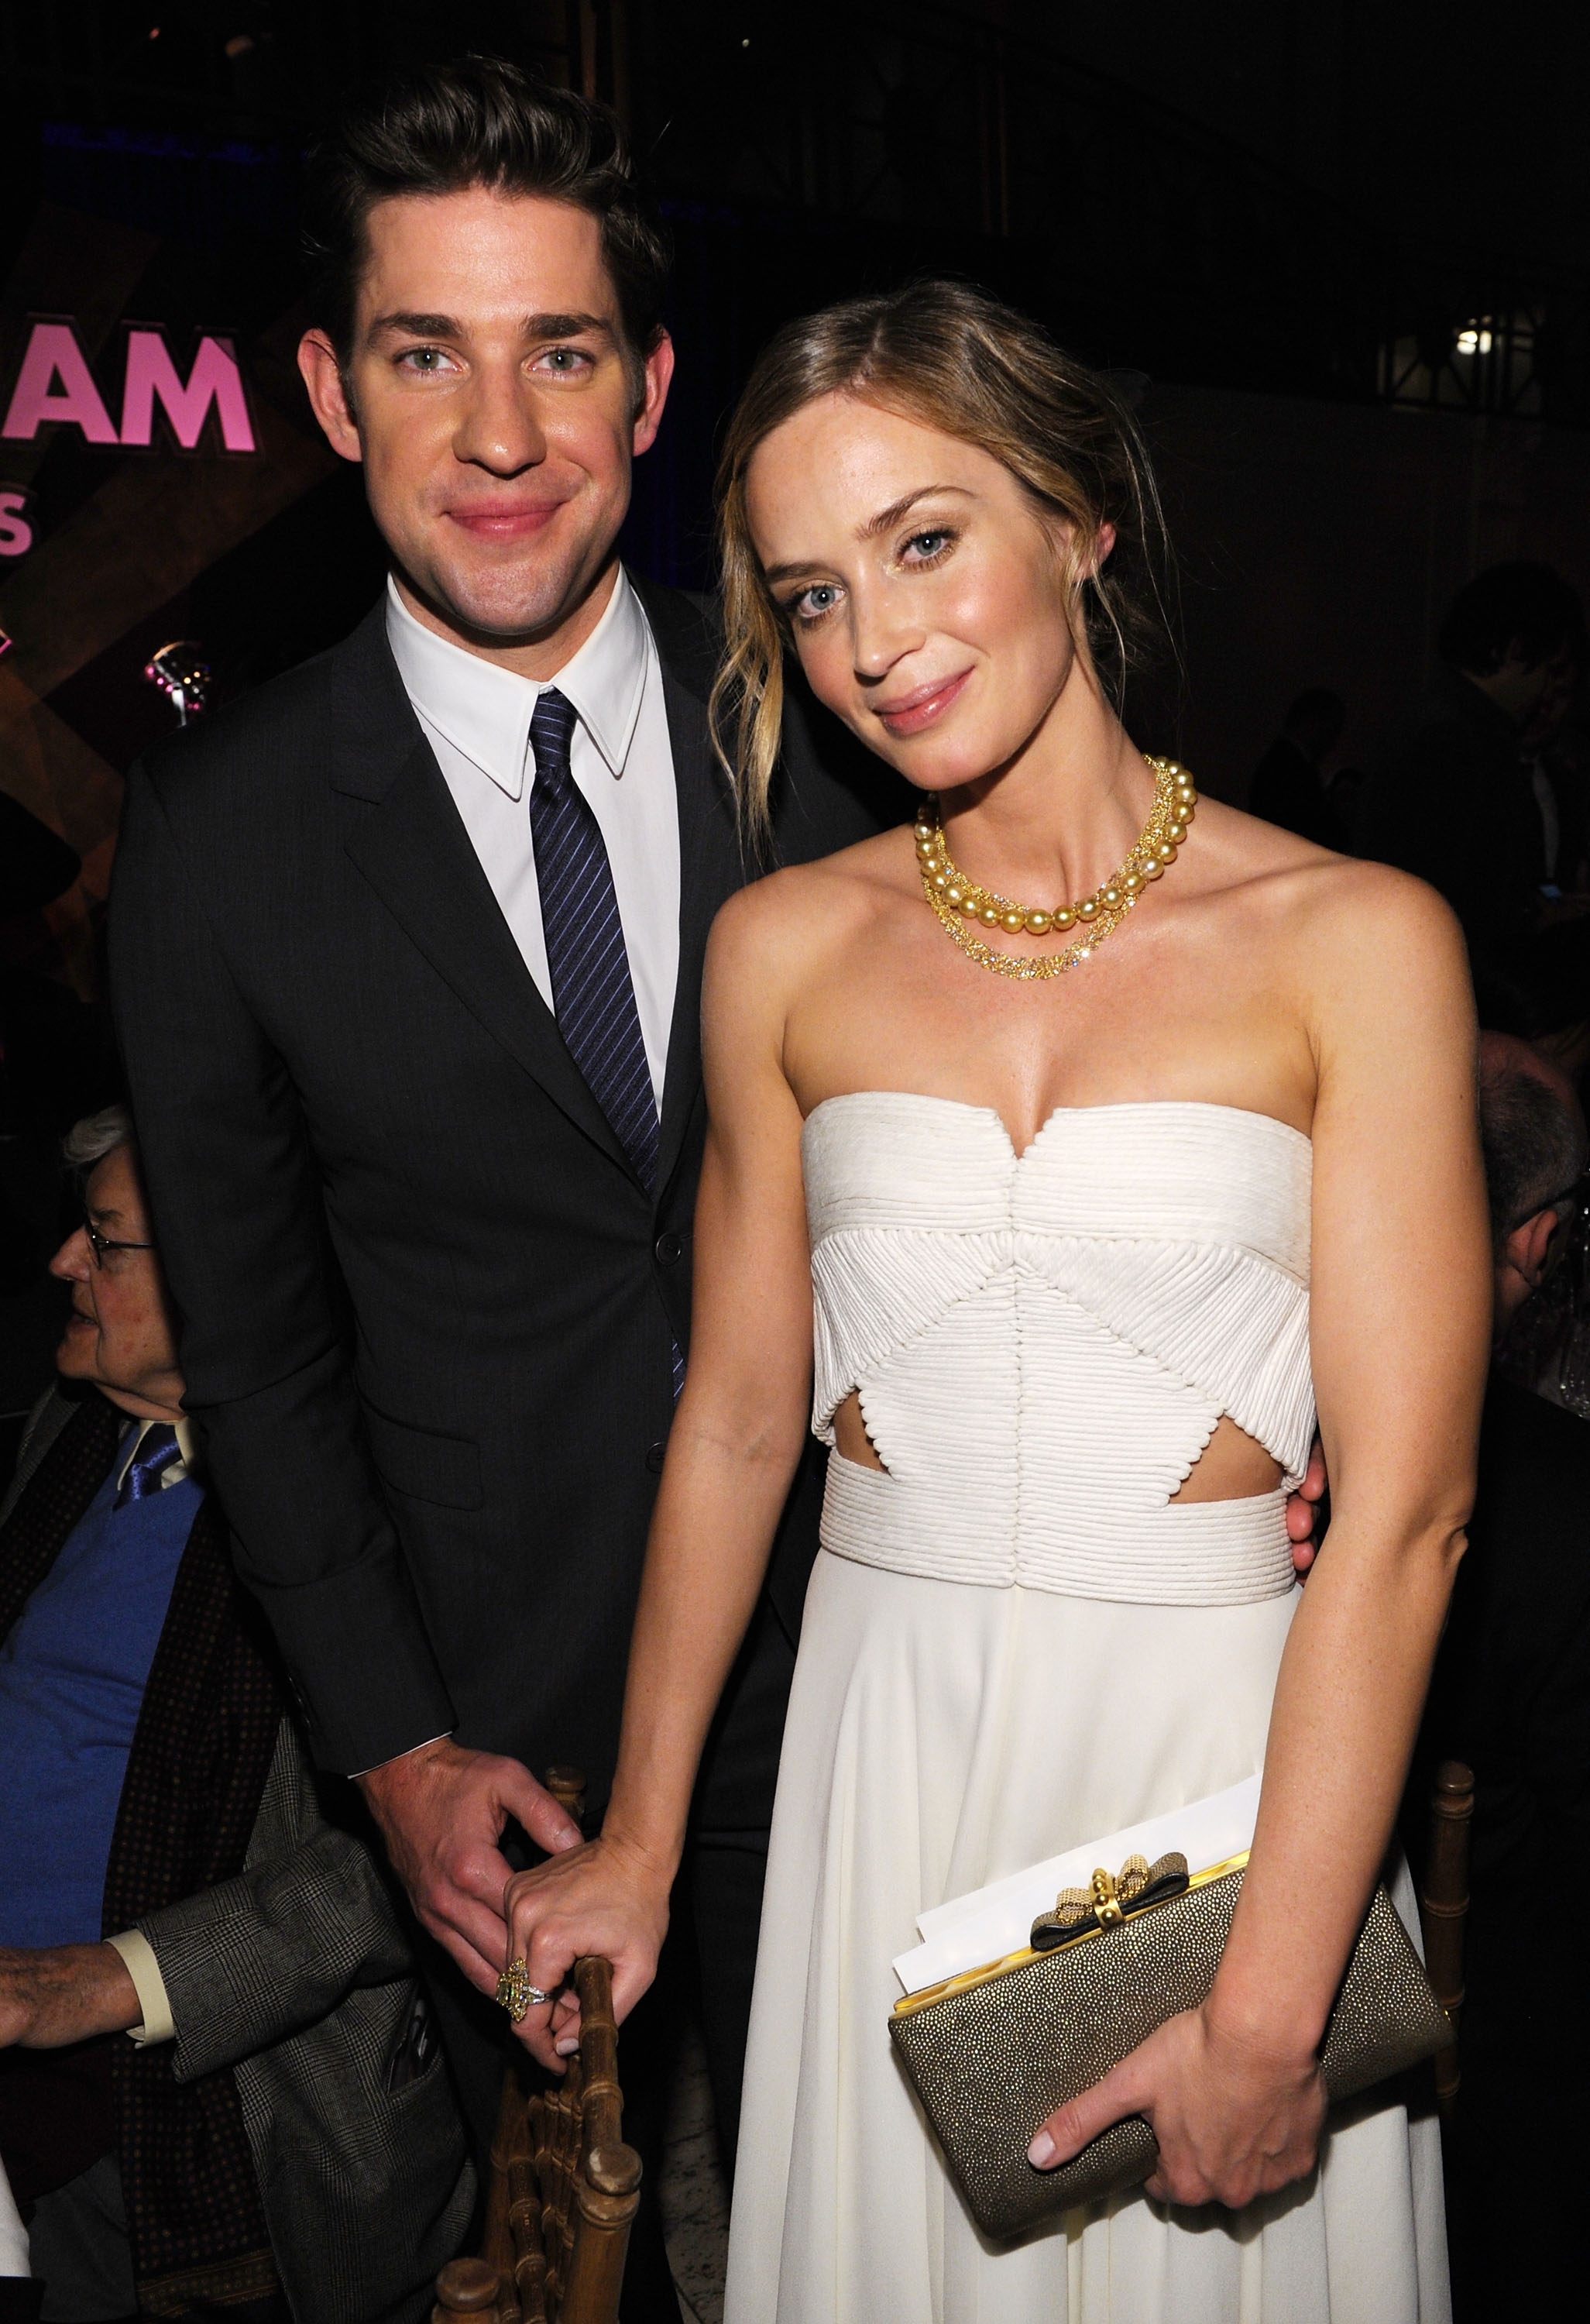 John-Krasinski-Emily-Blunt-marriage2.jpg